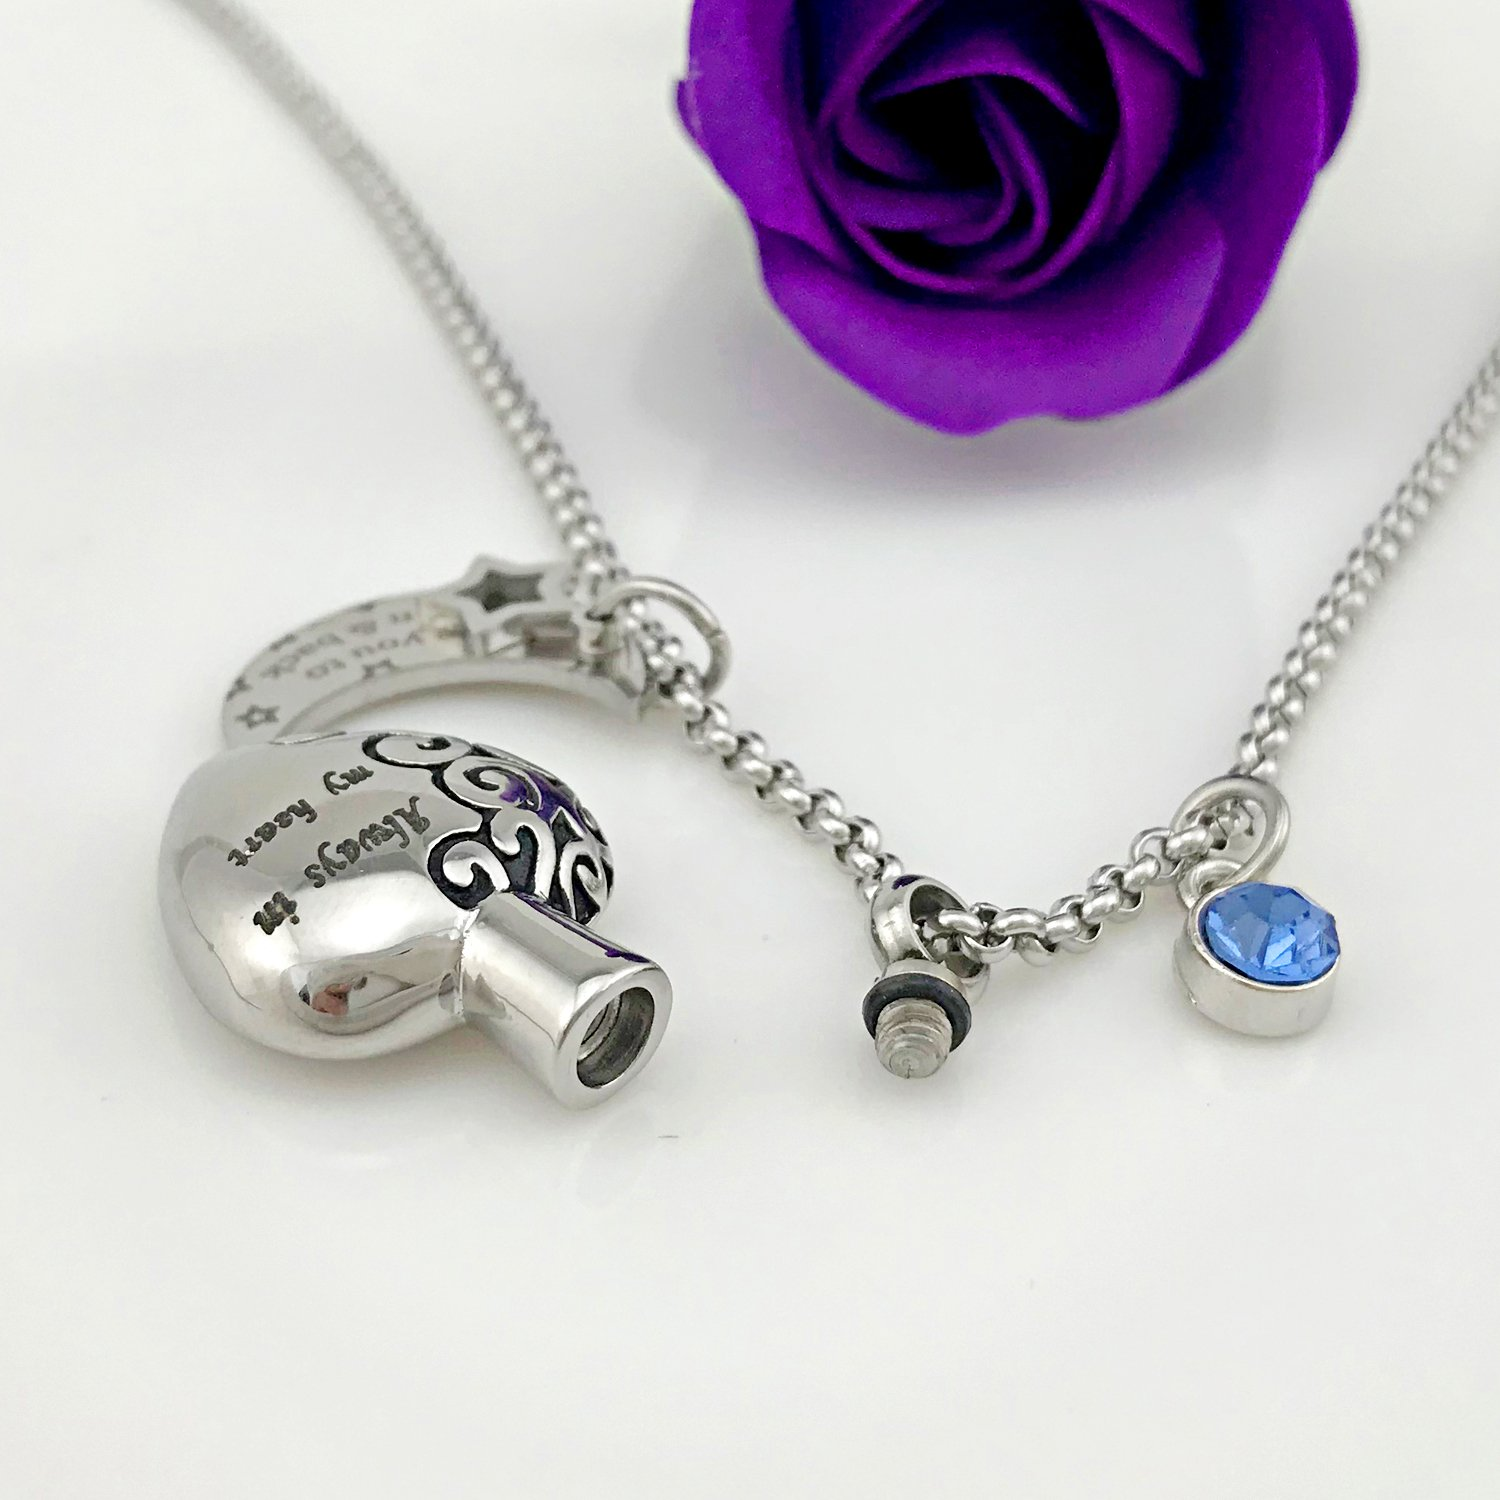 YOUFENG Urn Necklaces for Ashes Always in My Heart Love You to The Moon and Back 12 Birthstones Styles Necklace (December Birthstone URN Necklace) by YOUFENG (Image #4)